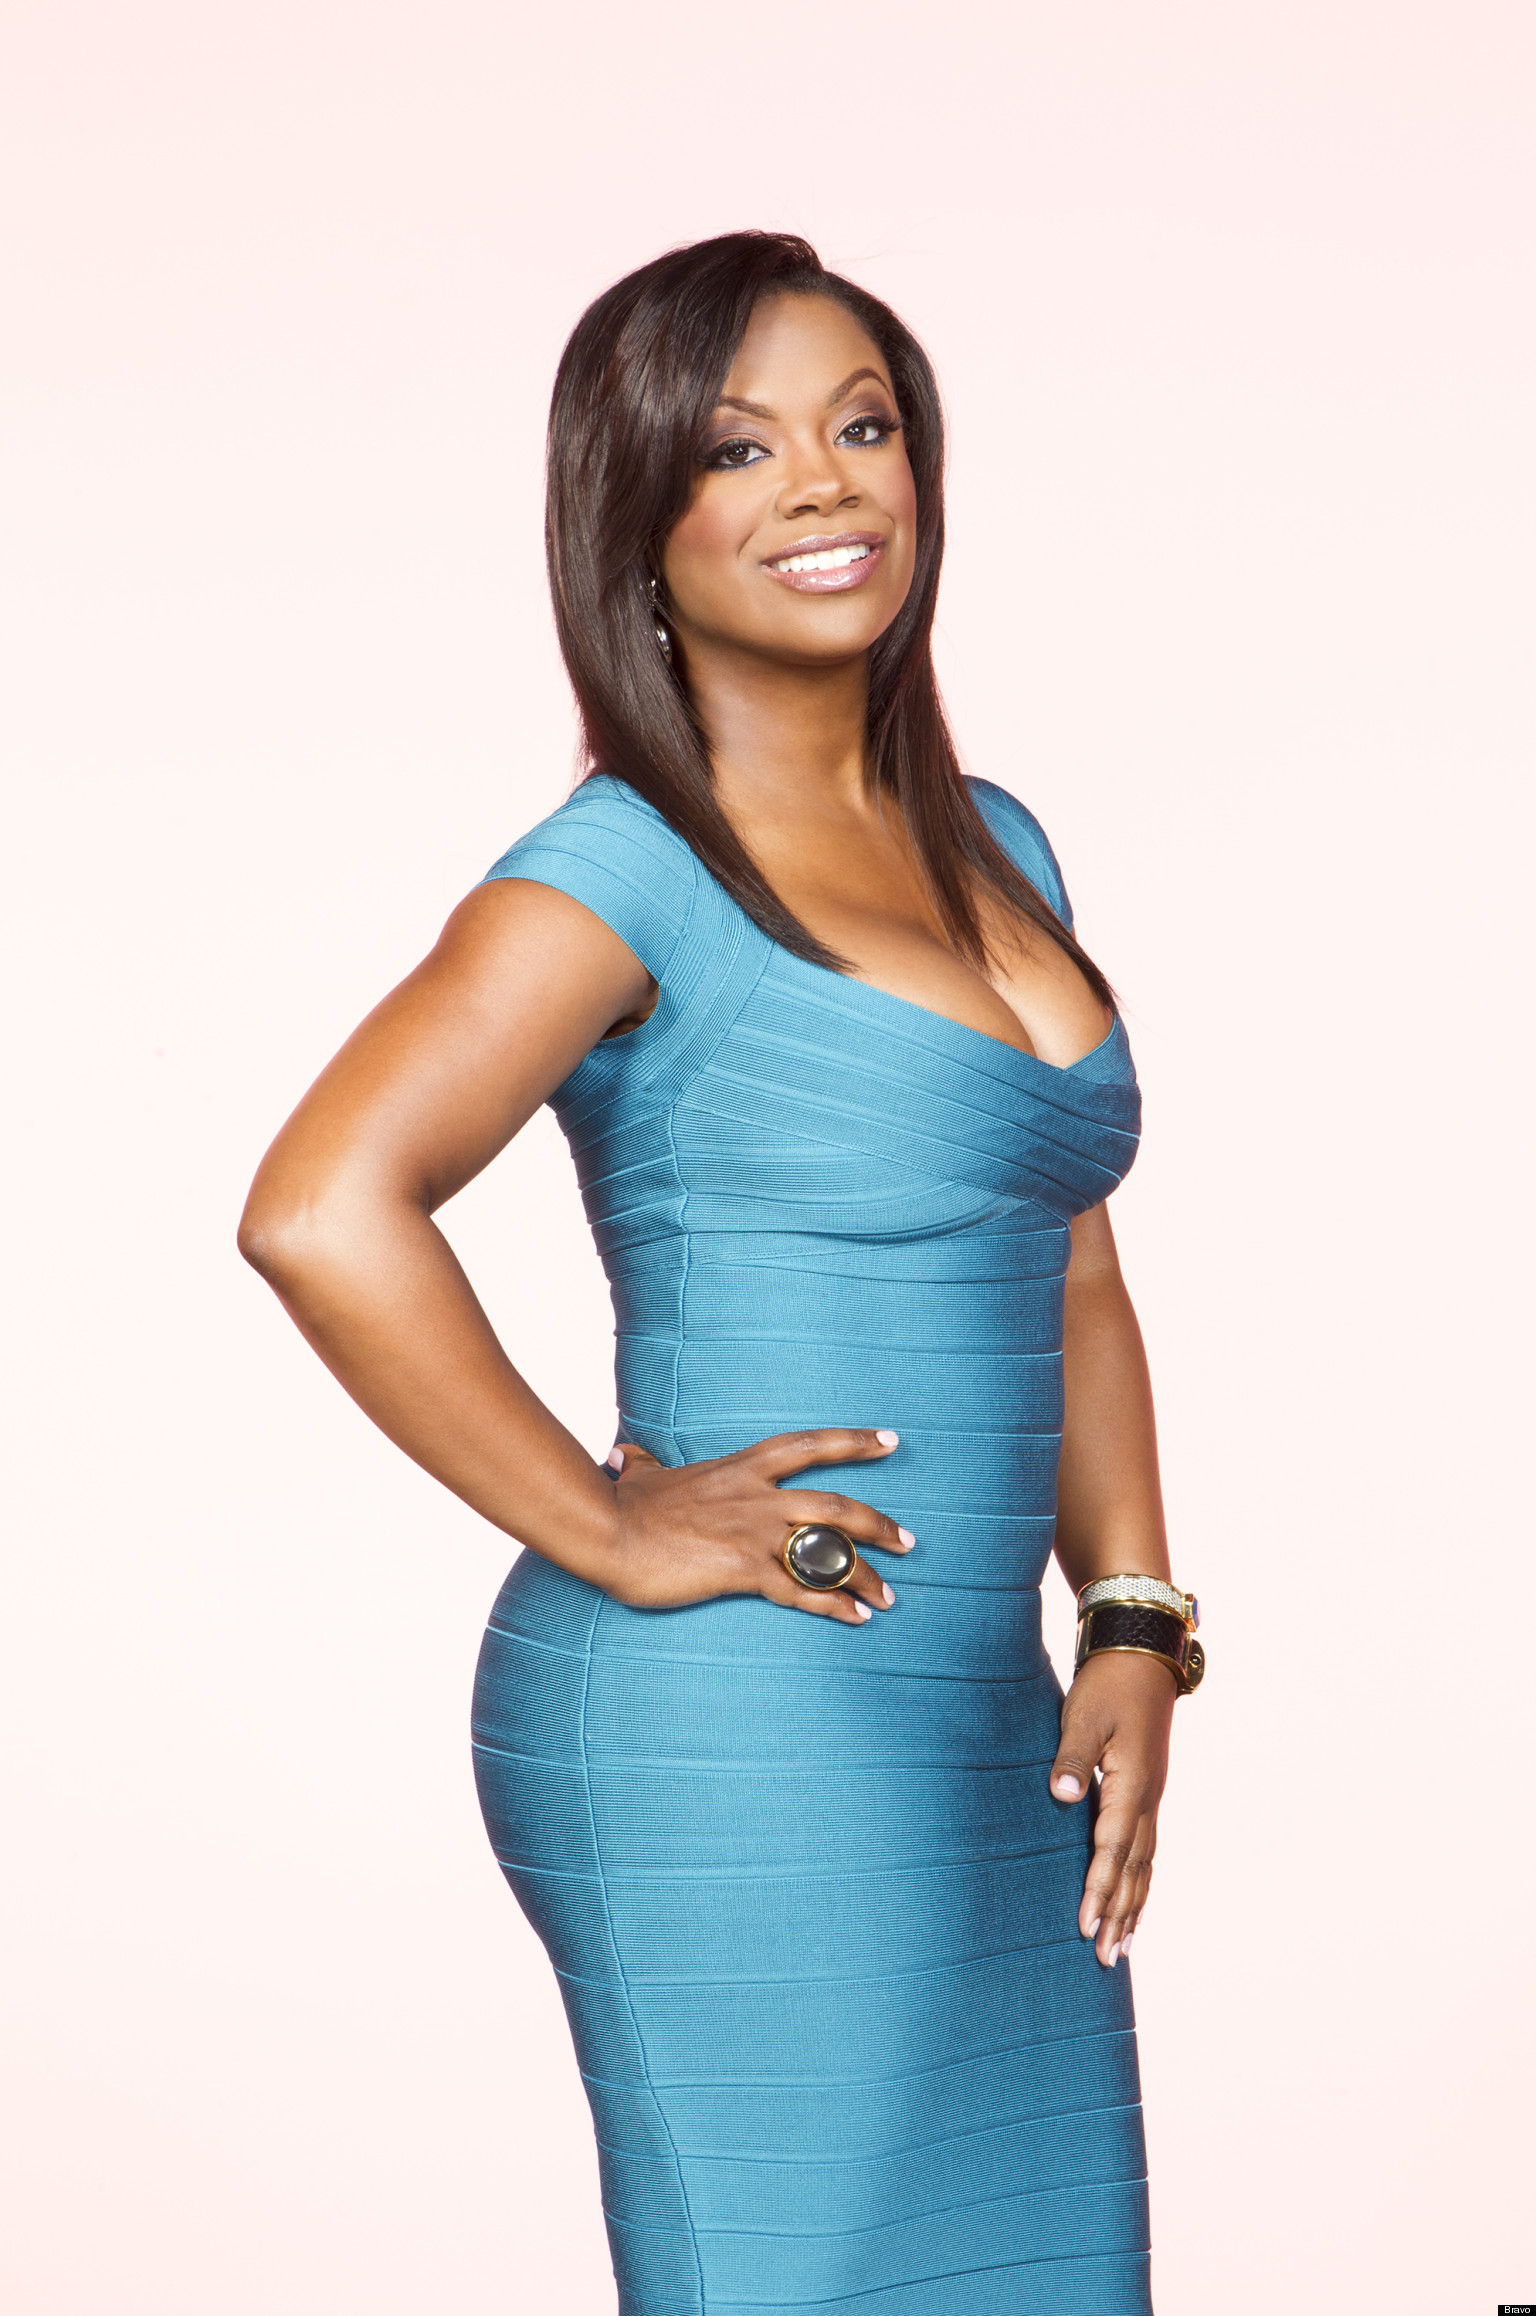 real housewives of atlanta season 5 kandi burruss talks new love real housewives of atlanta season 5 kandi burruss talks new love new ladies and new rivalries huffpost